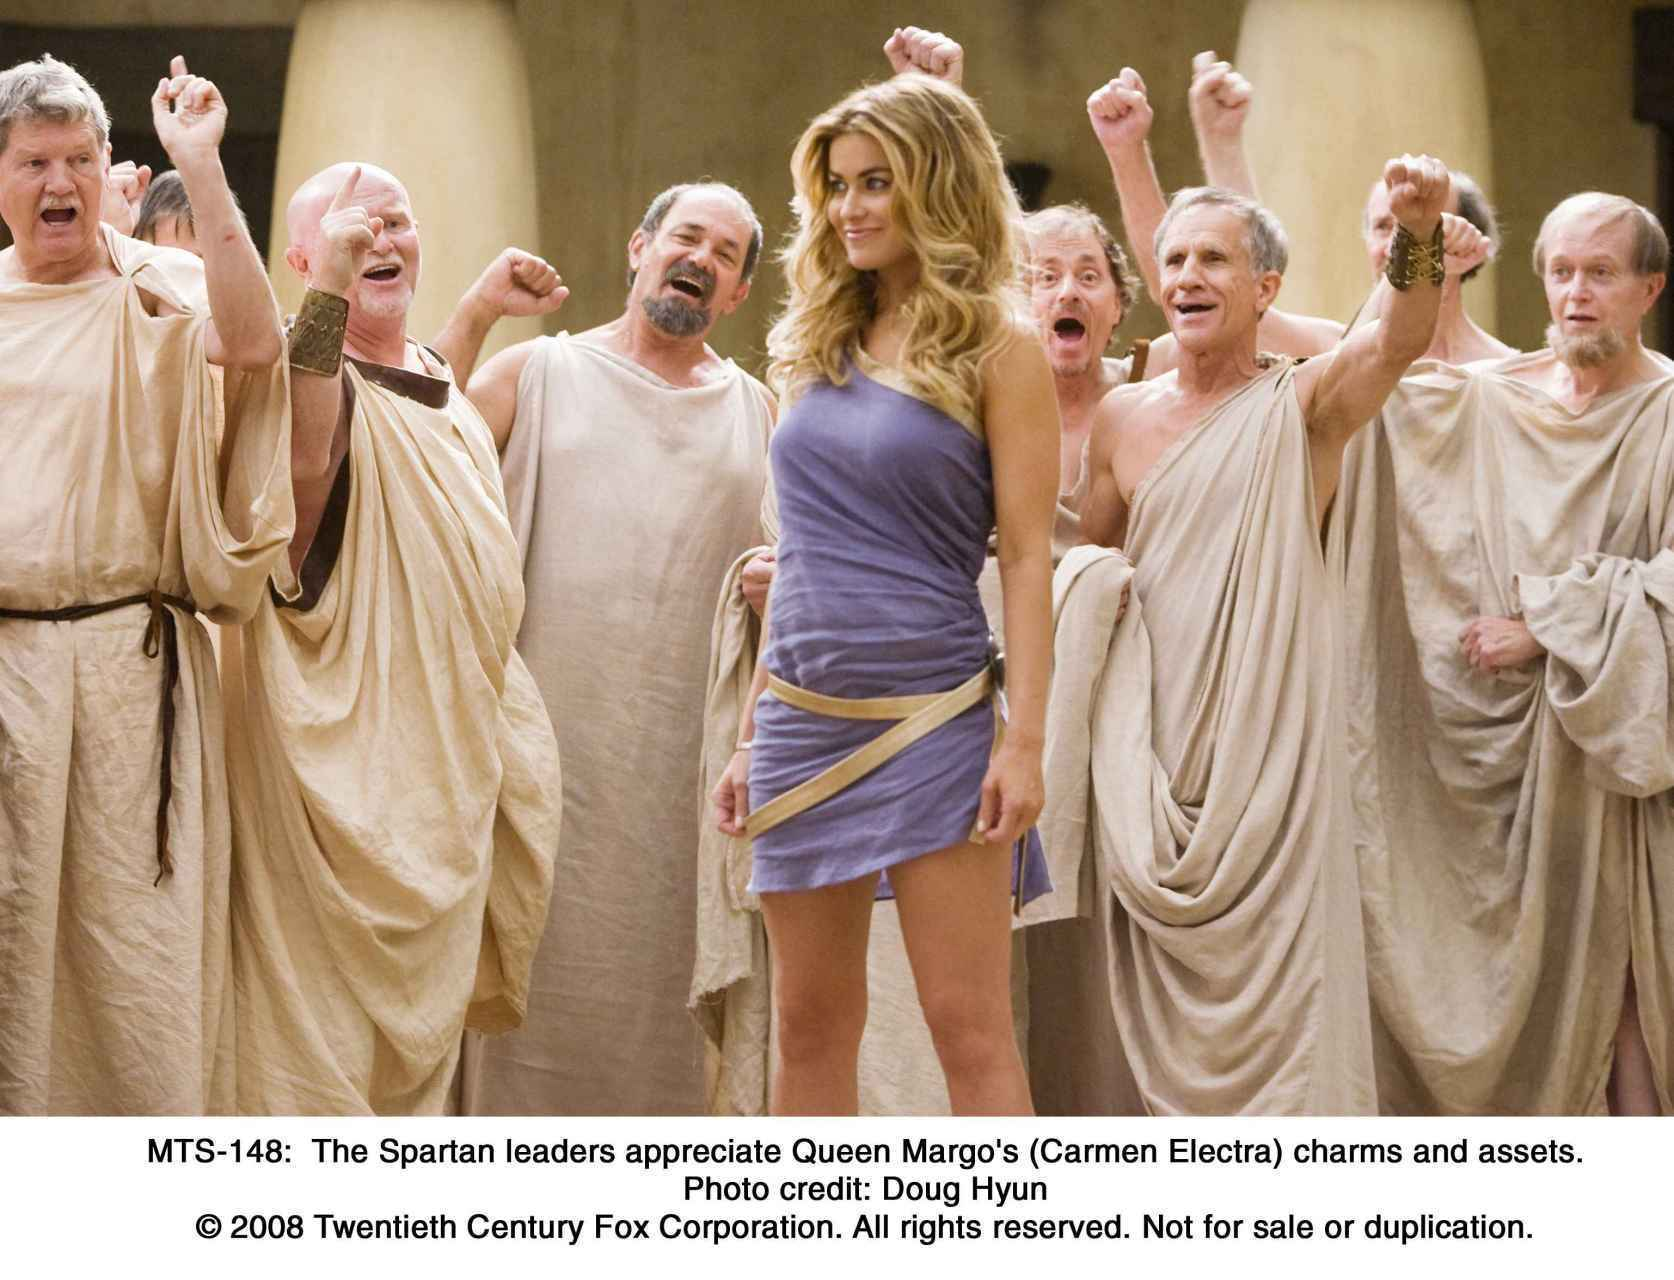 who plays the woman in meet spartans